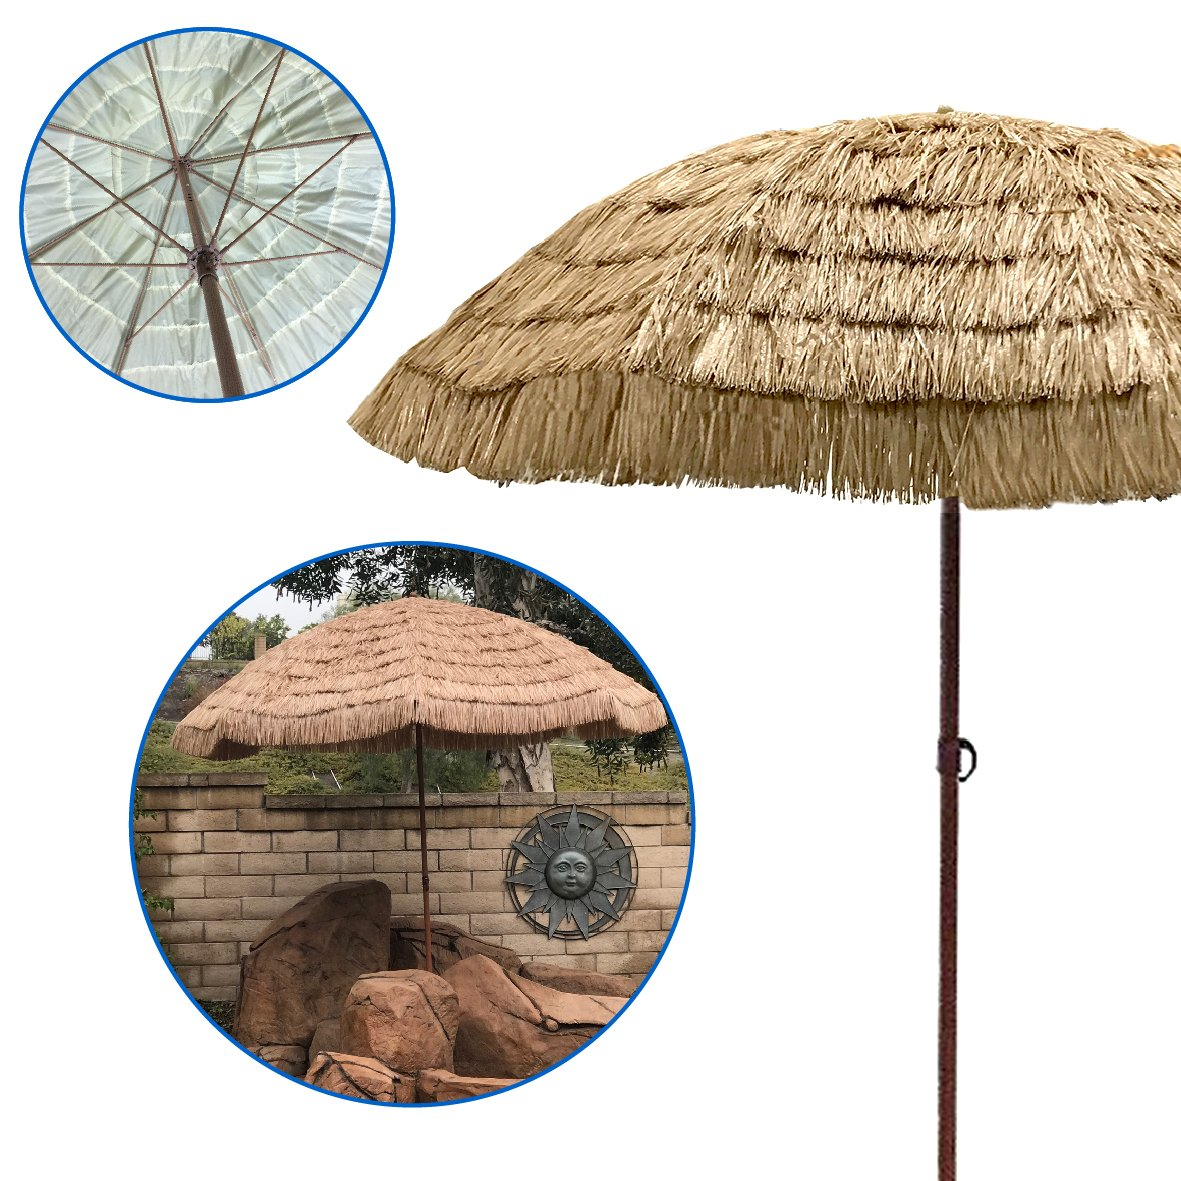 EasyGo - Thatch Patio Tiki Umbrella - Tropical Palapa Raffia Tiki Hut Hawaiian Hula Beach Umbrella (9.5ft) by EasyGoProducts